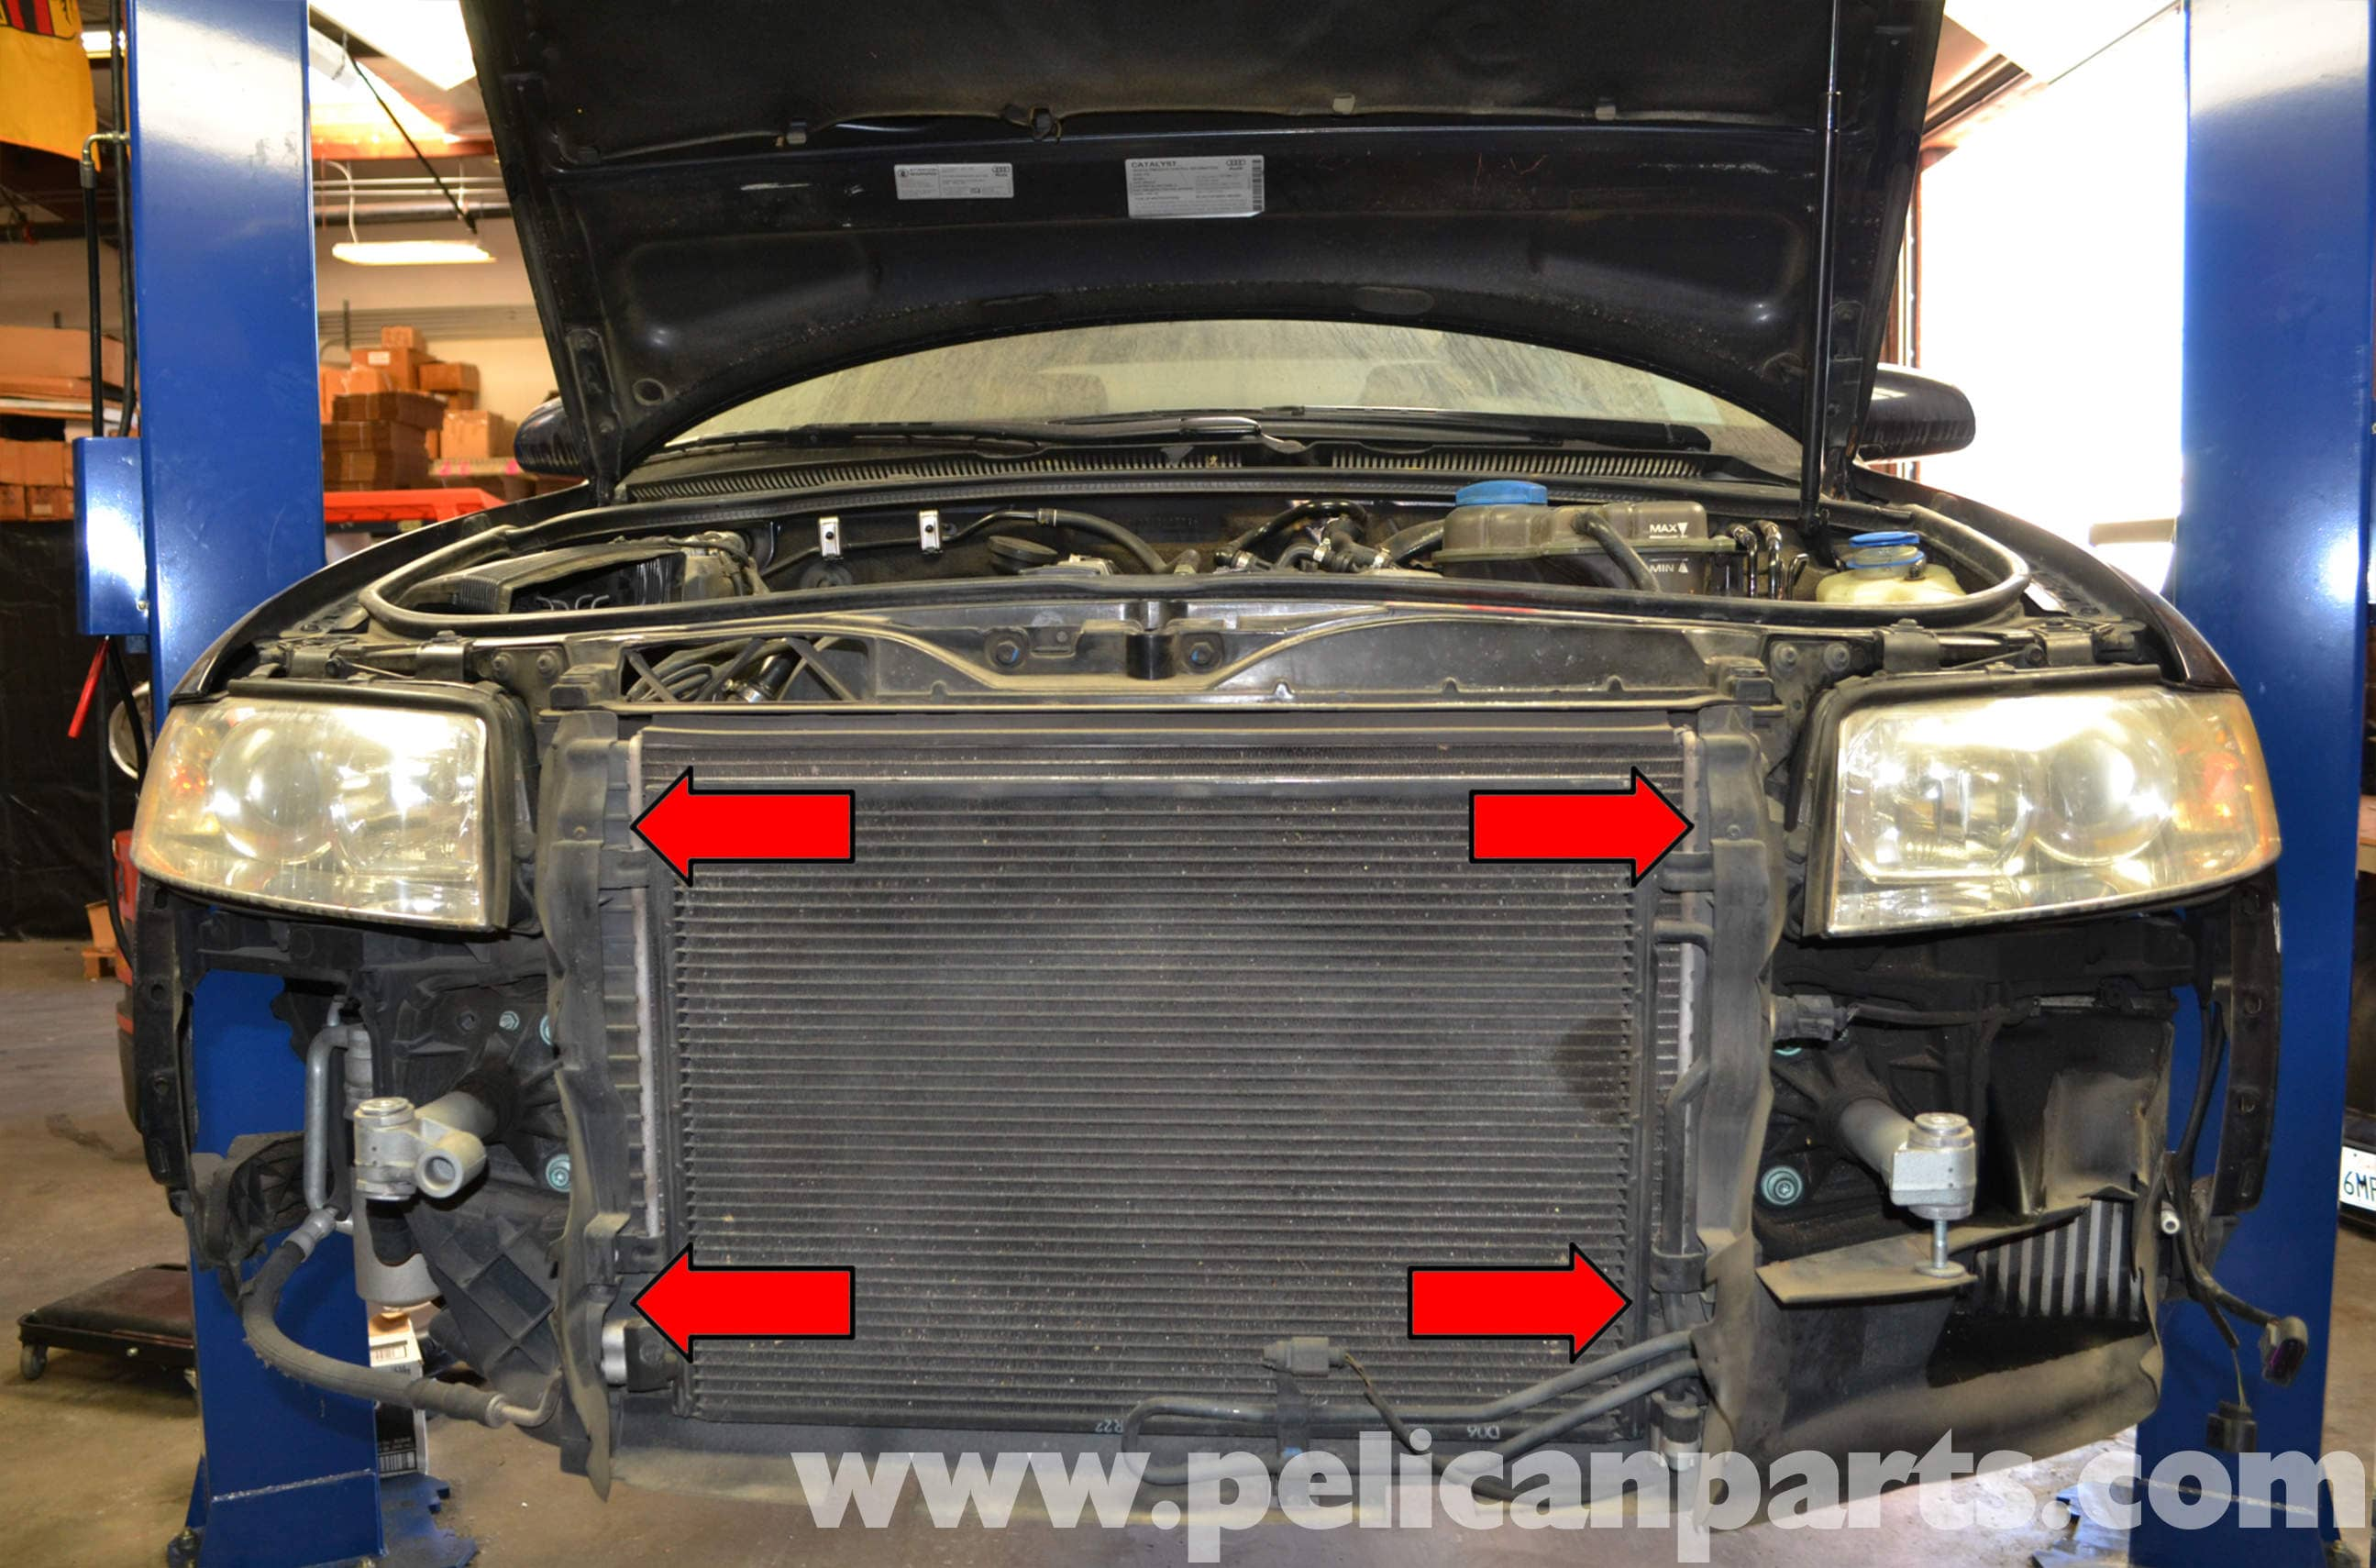 audi a4 b6 radiator replacement 1 8t 2002 2008 pelican parts diy rh pelicanparts com Audi A4 Owners Manual PDF 2002 Audi Car